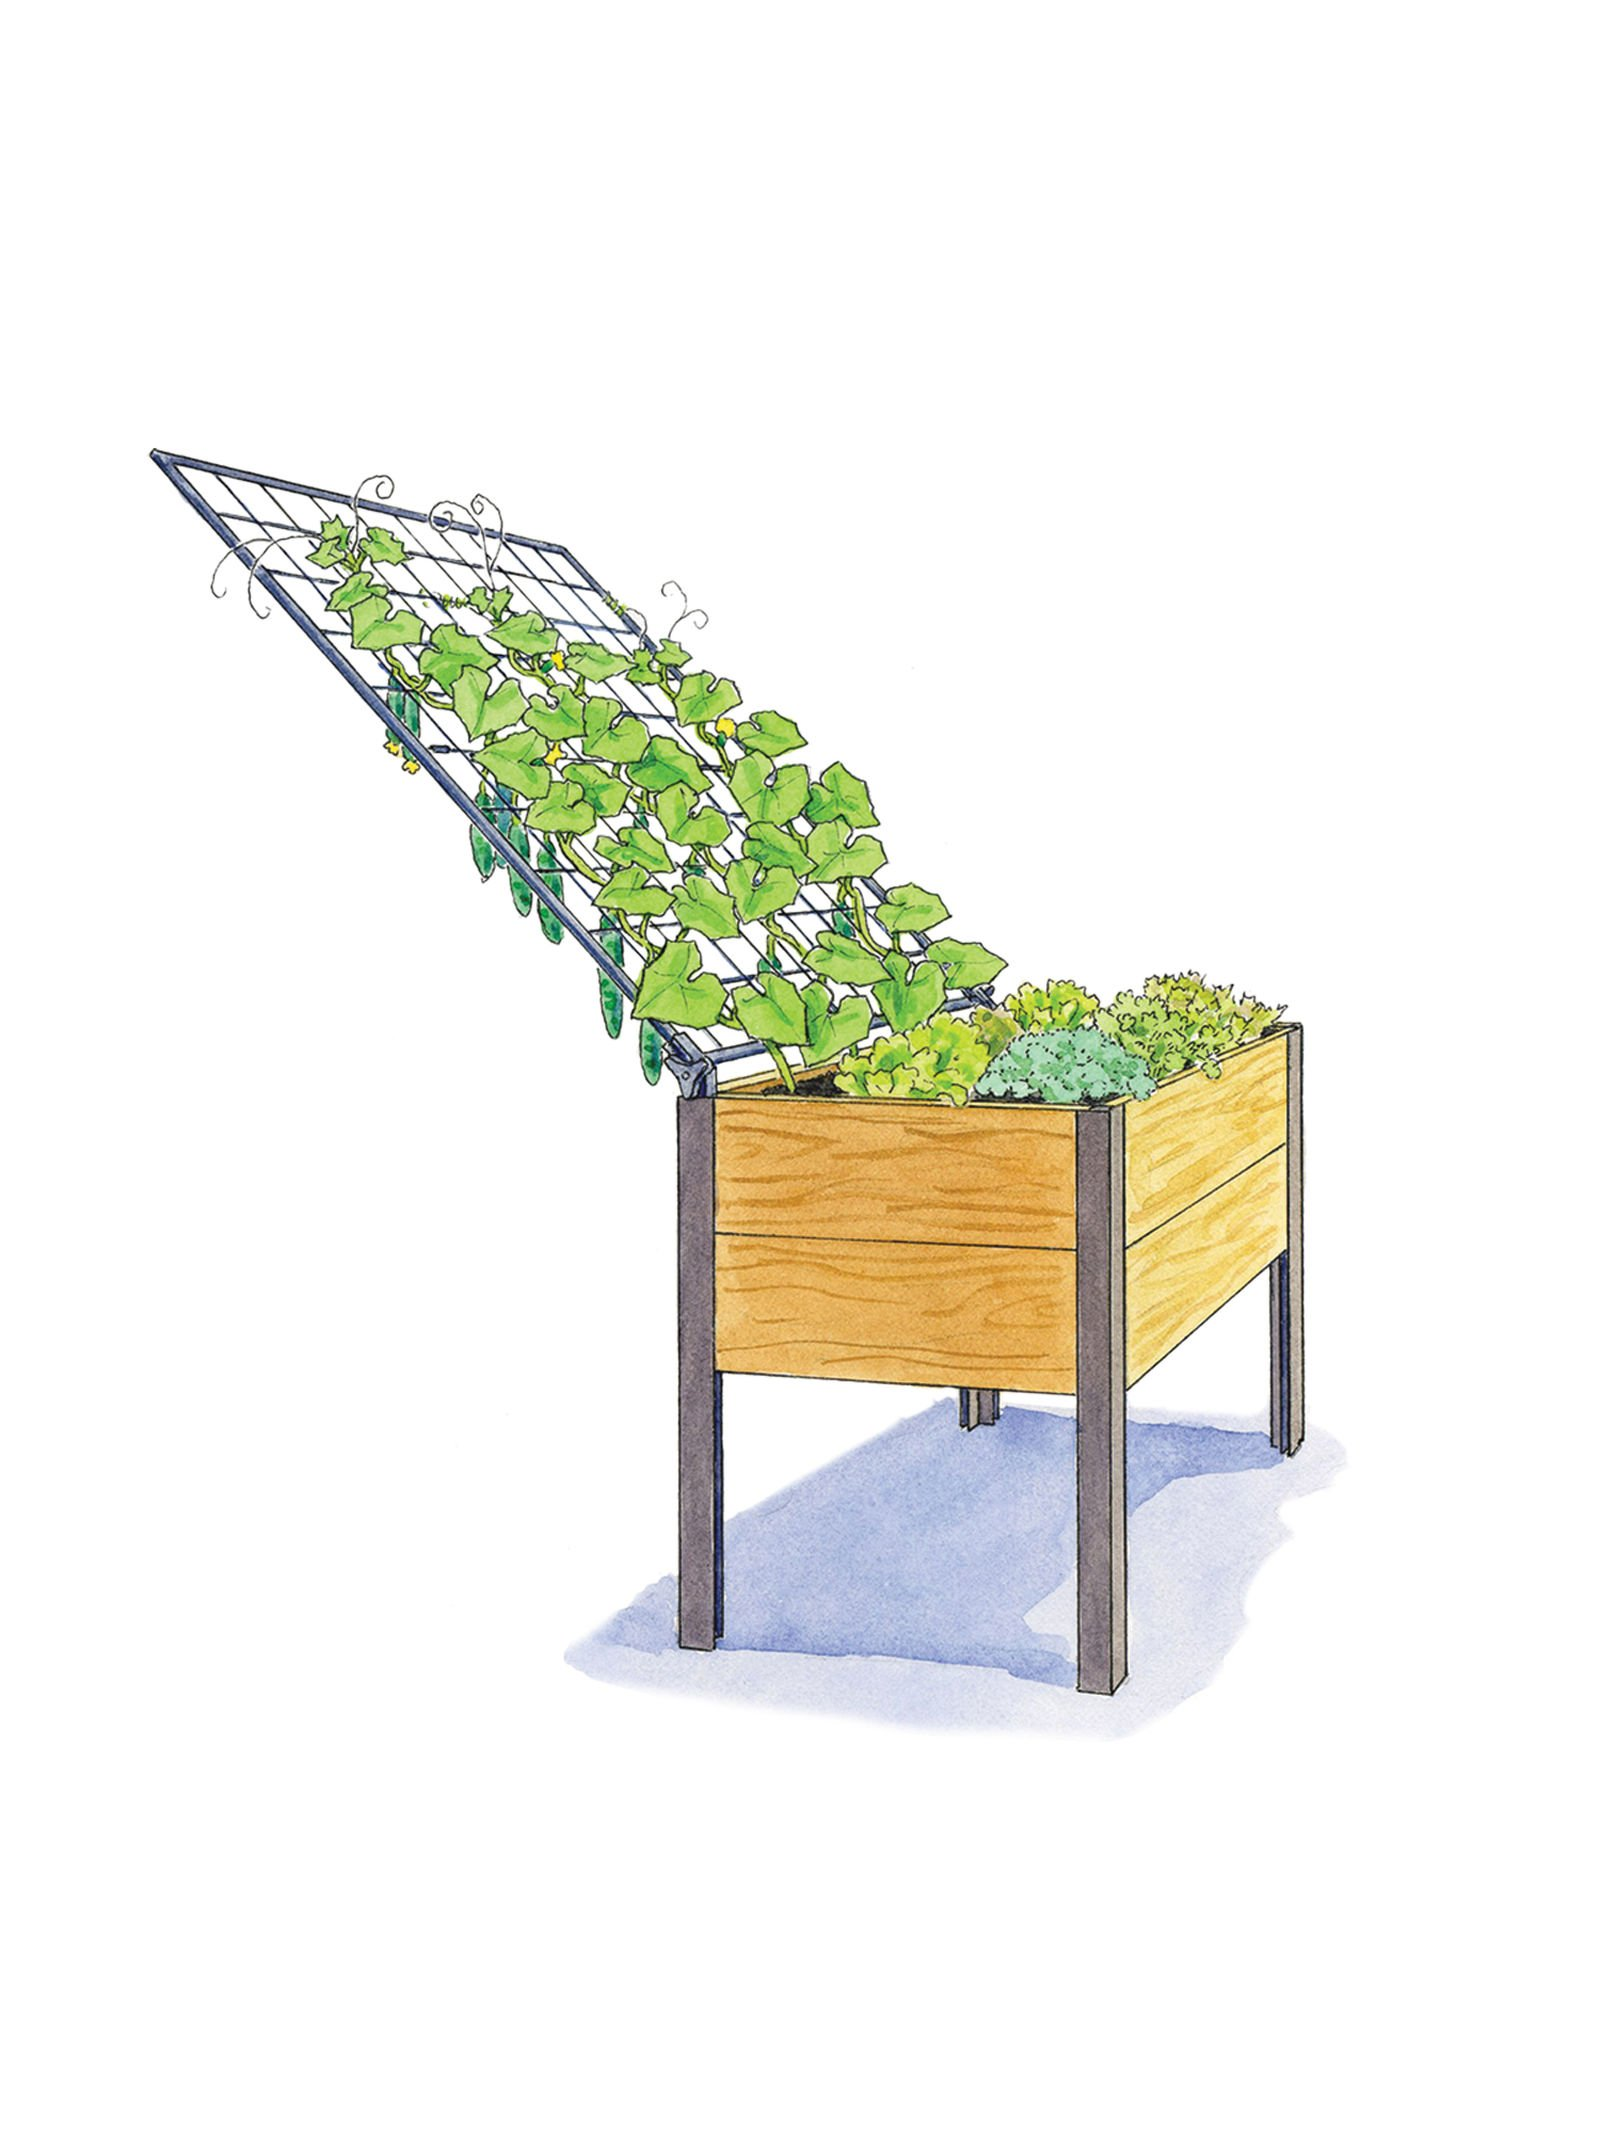 Elevated Cedar Planter Box and Space-Maker Pivoting Trellis Set, 28217; x 48217;